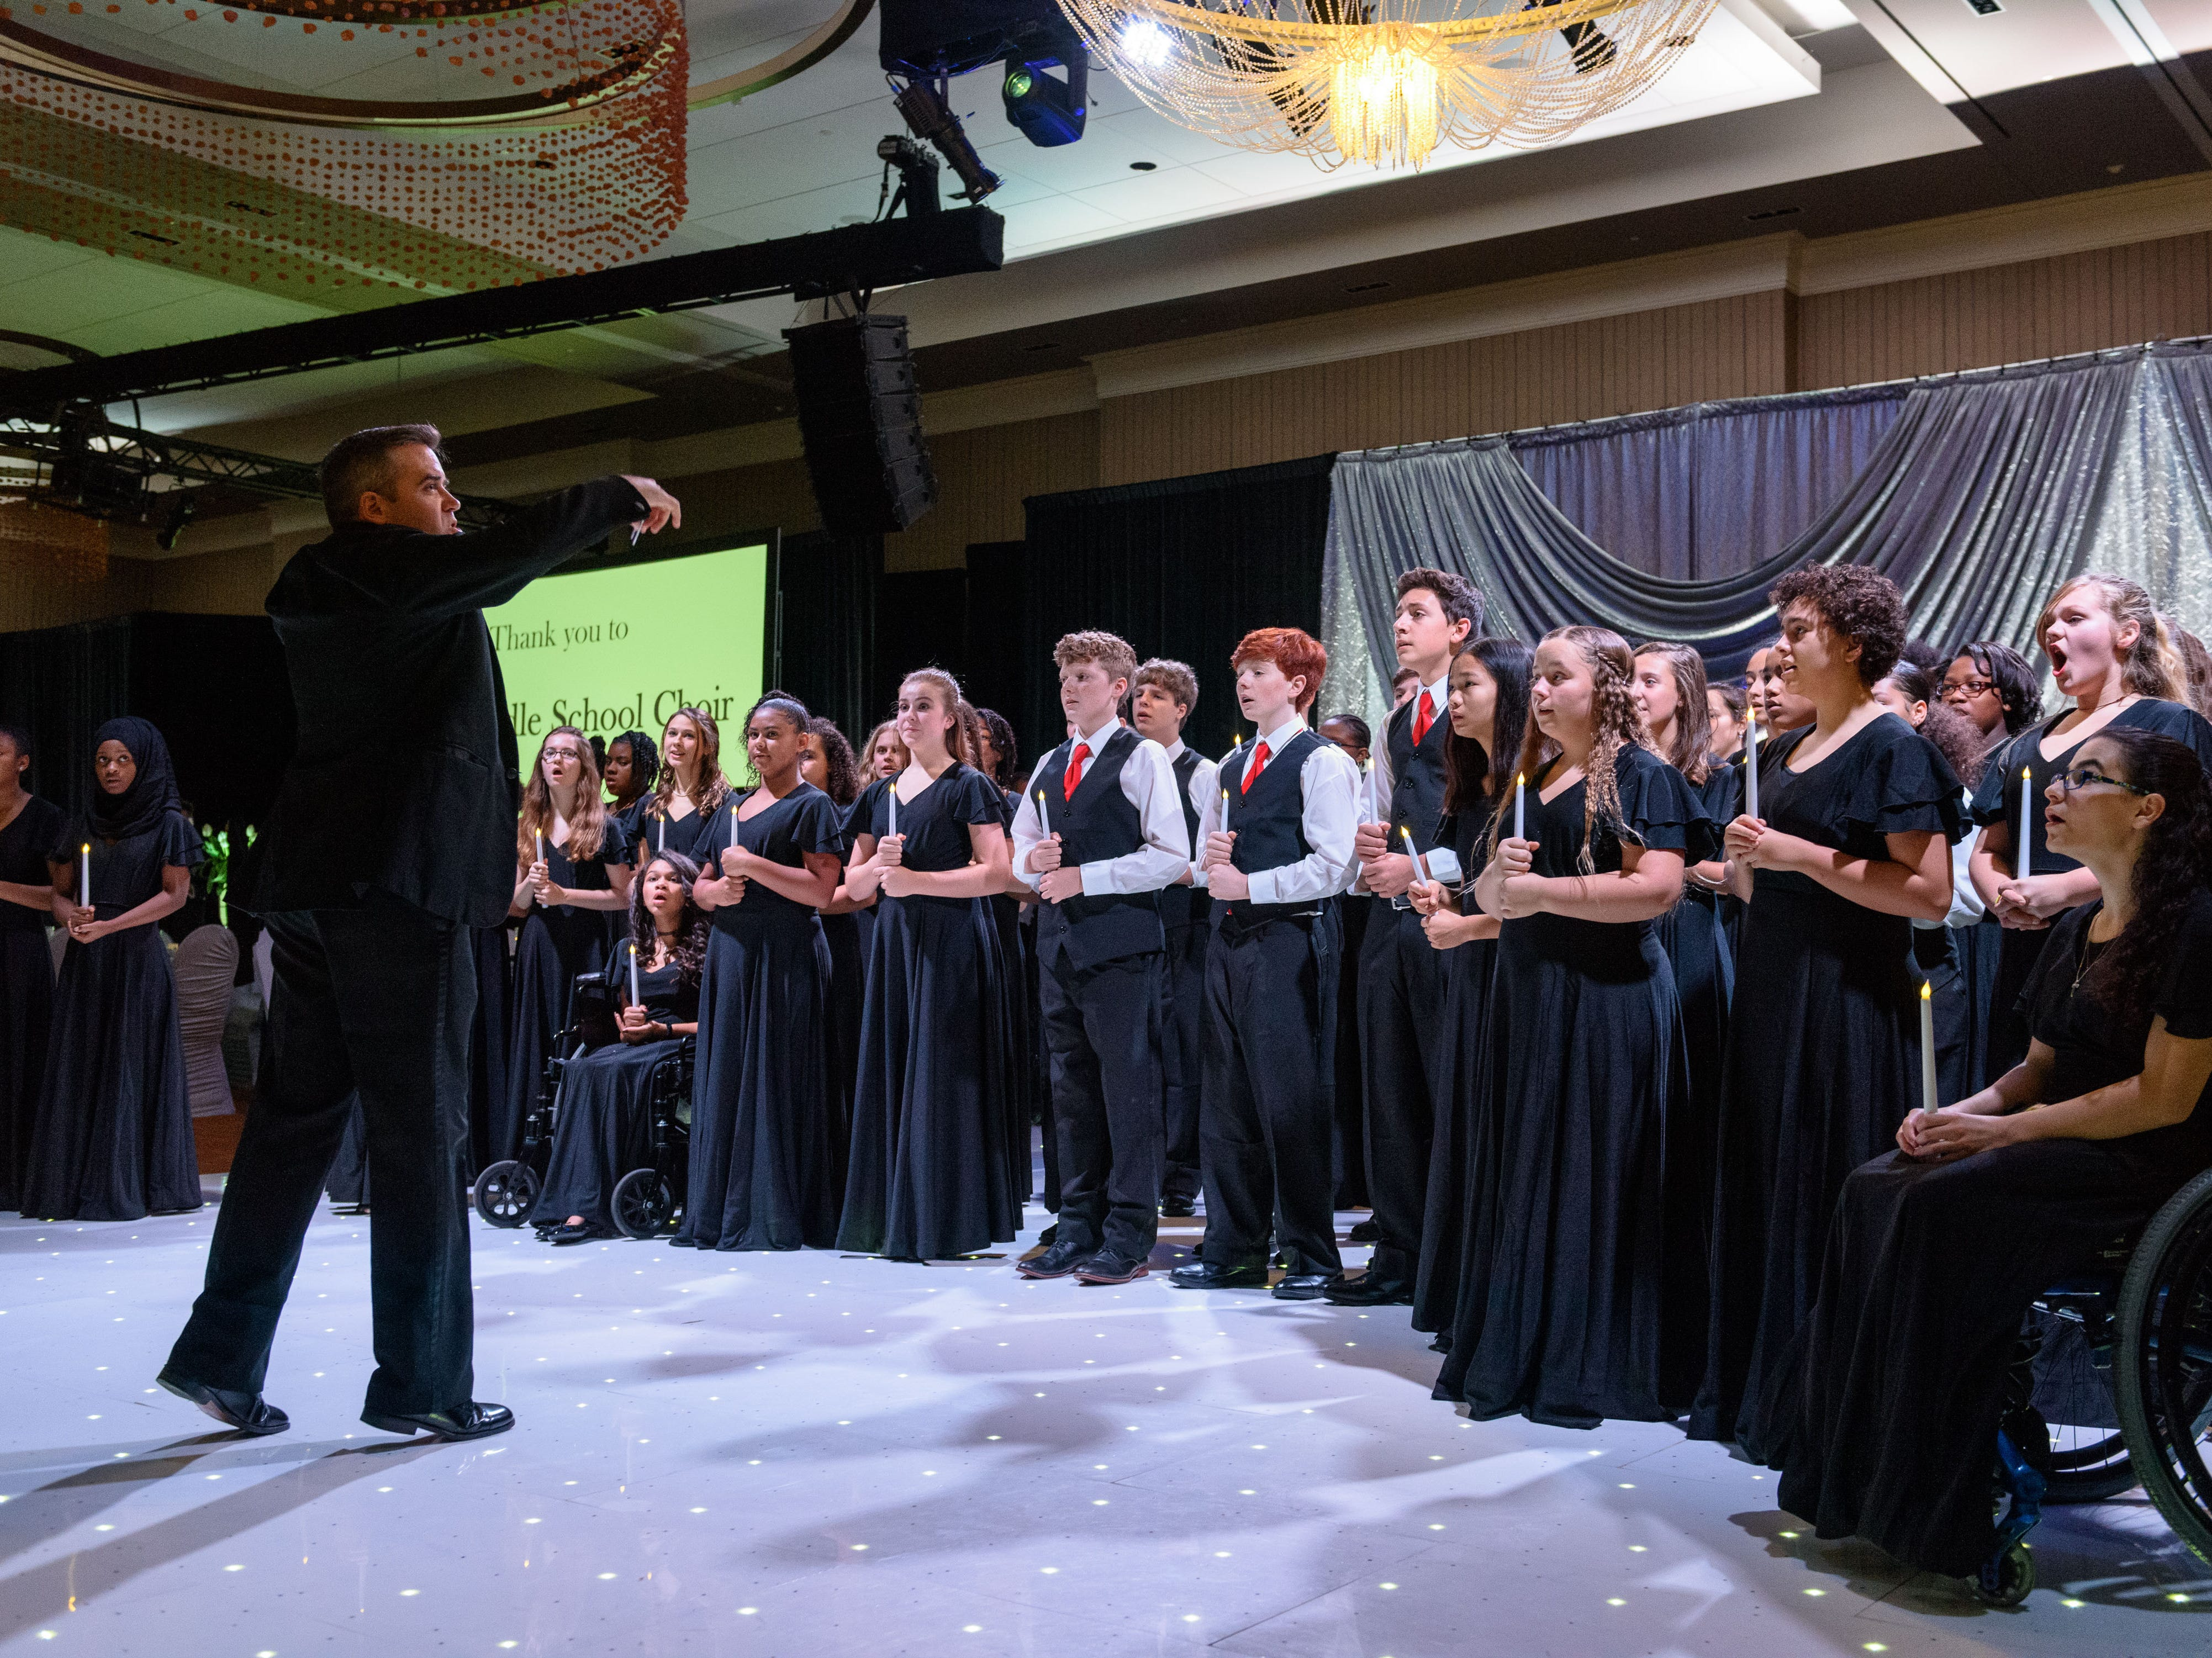 Music by the Noe Middle School Choir perform for guests arriving for dinner at the Snow Ball Gala at the Omni Hotel, a benefit for the Jennifer Lawrence Cardiac Intensive Care Unit (CICU) at Norton ChildrenÕs Hospital. 